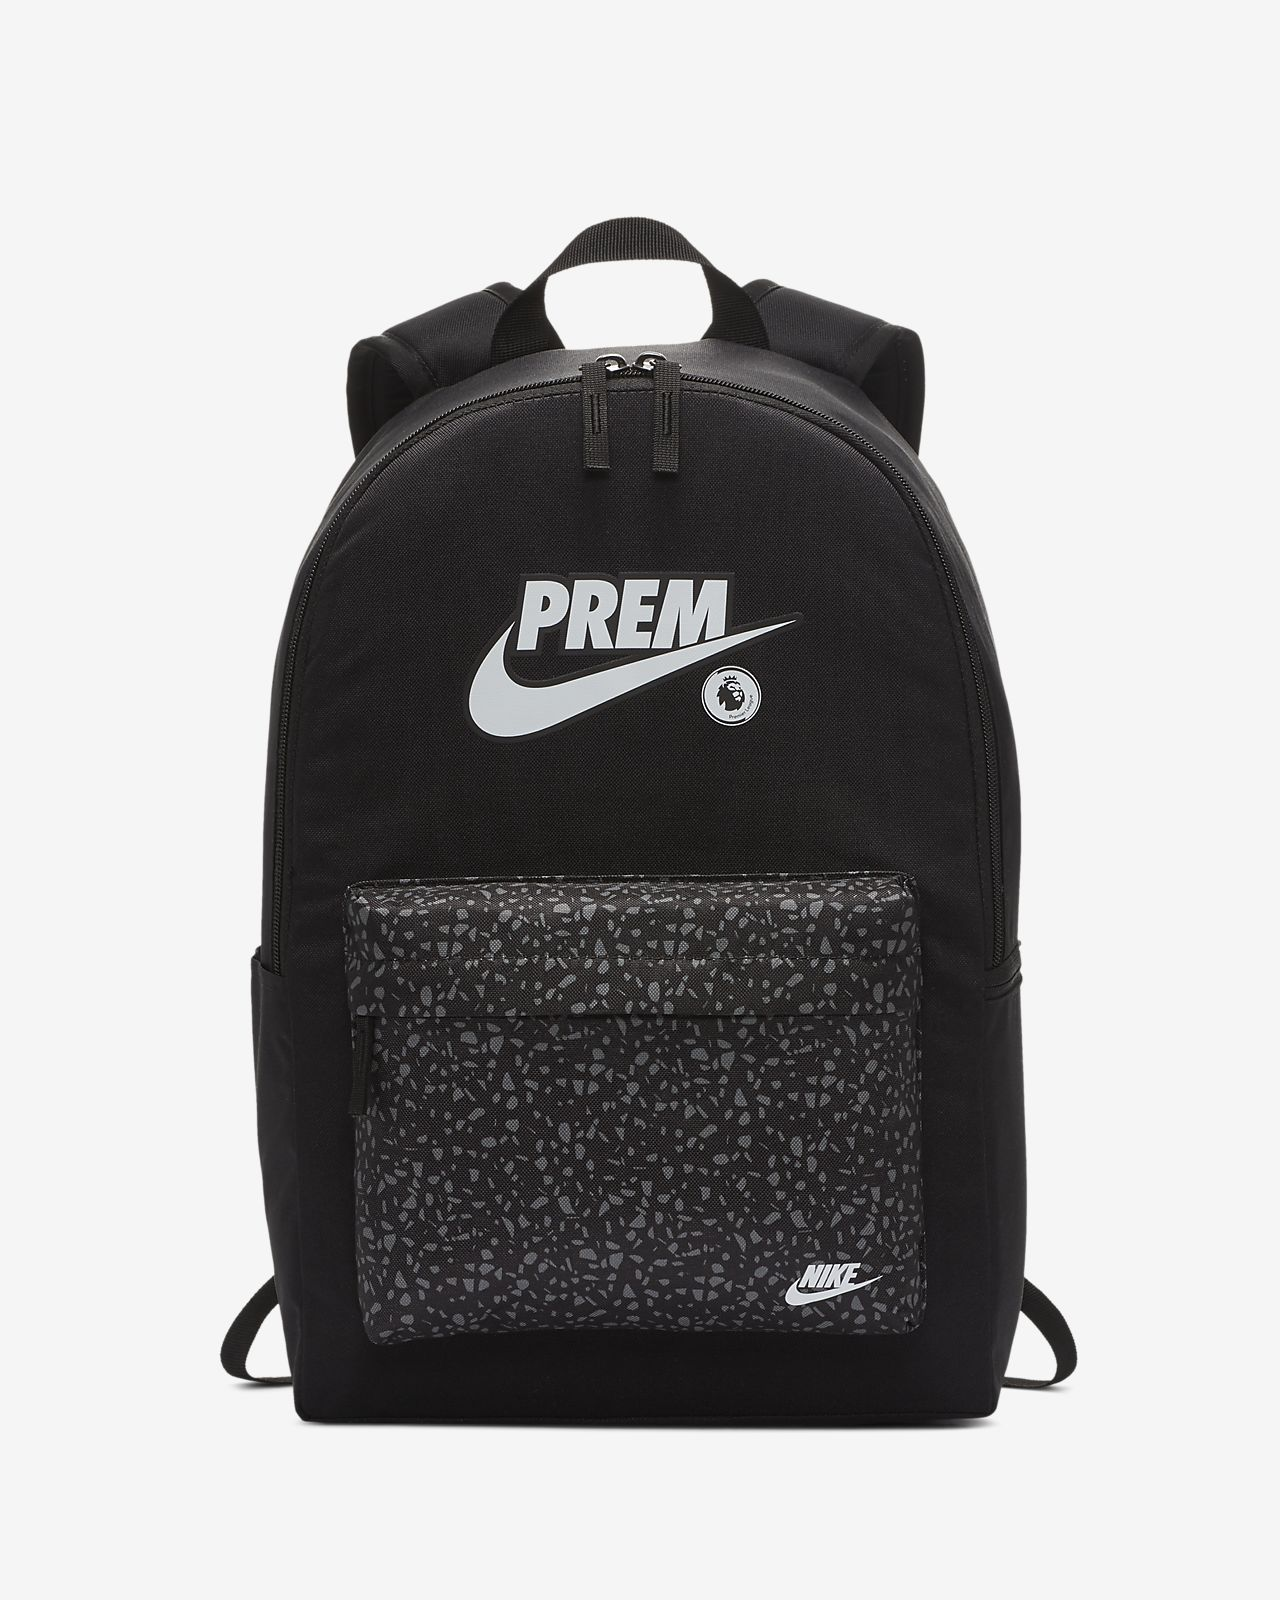 Sac à dos de football English Premier League Nike